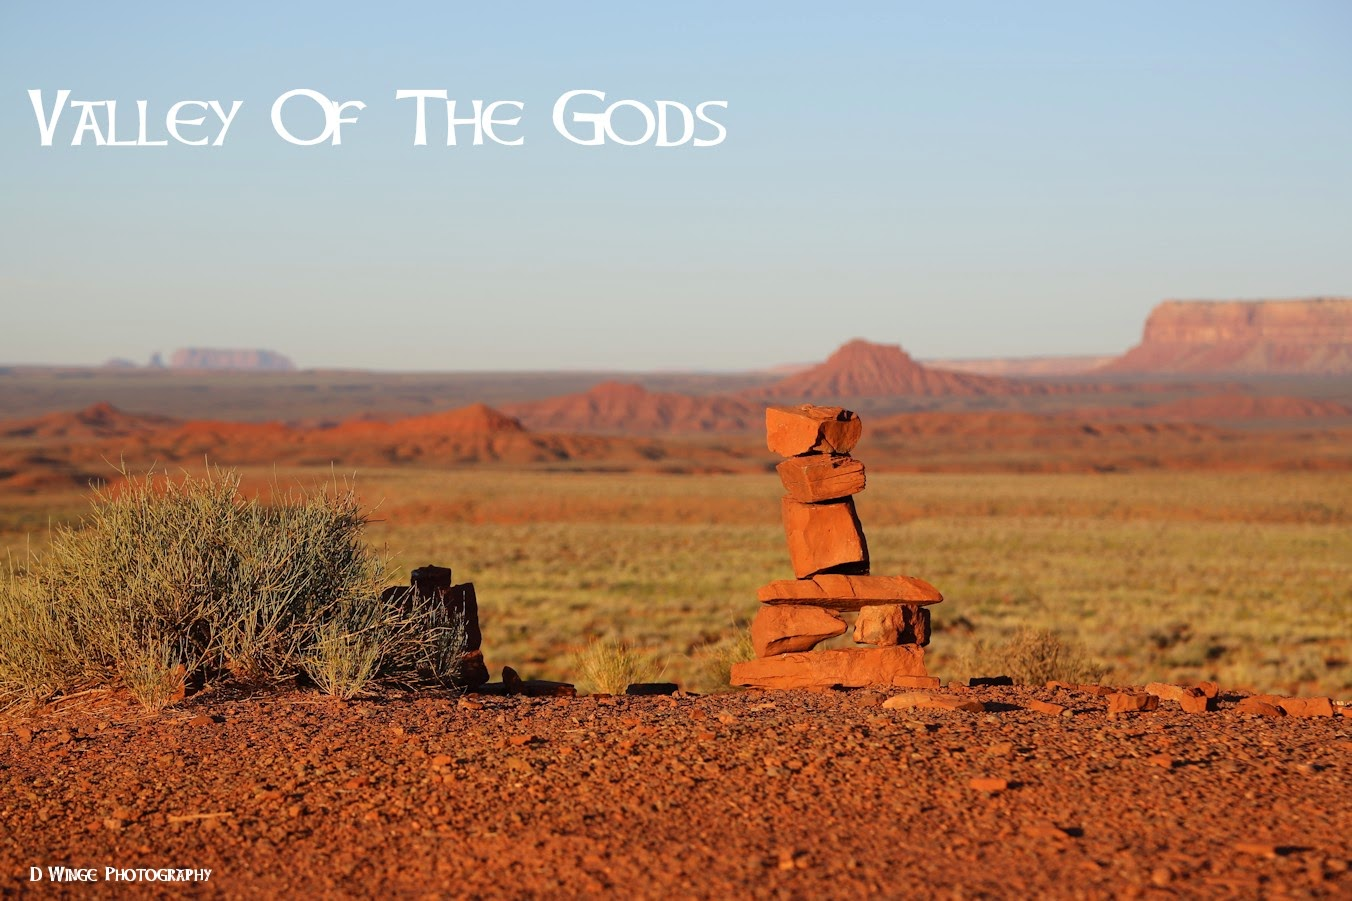 http://www.redbubble.com/people/dwinge/calendars/12641278-valley-of-the-gods-utah